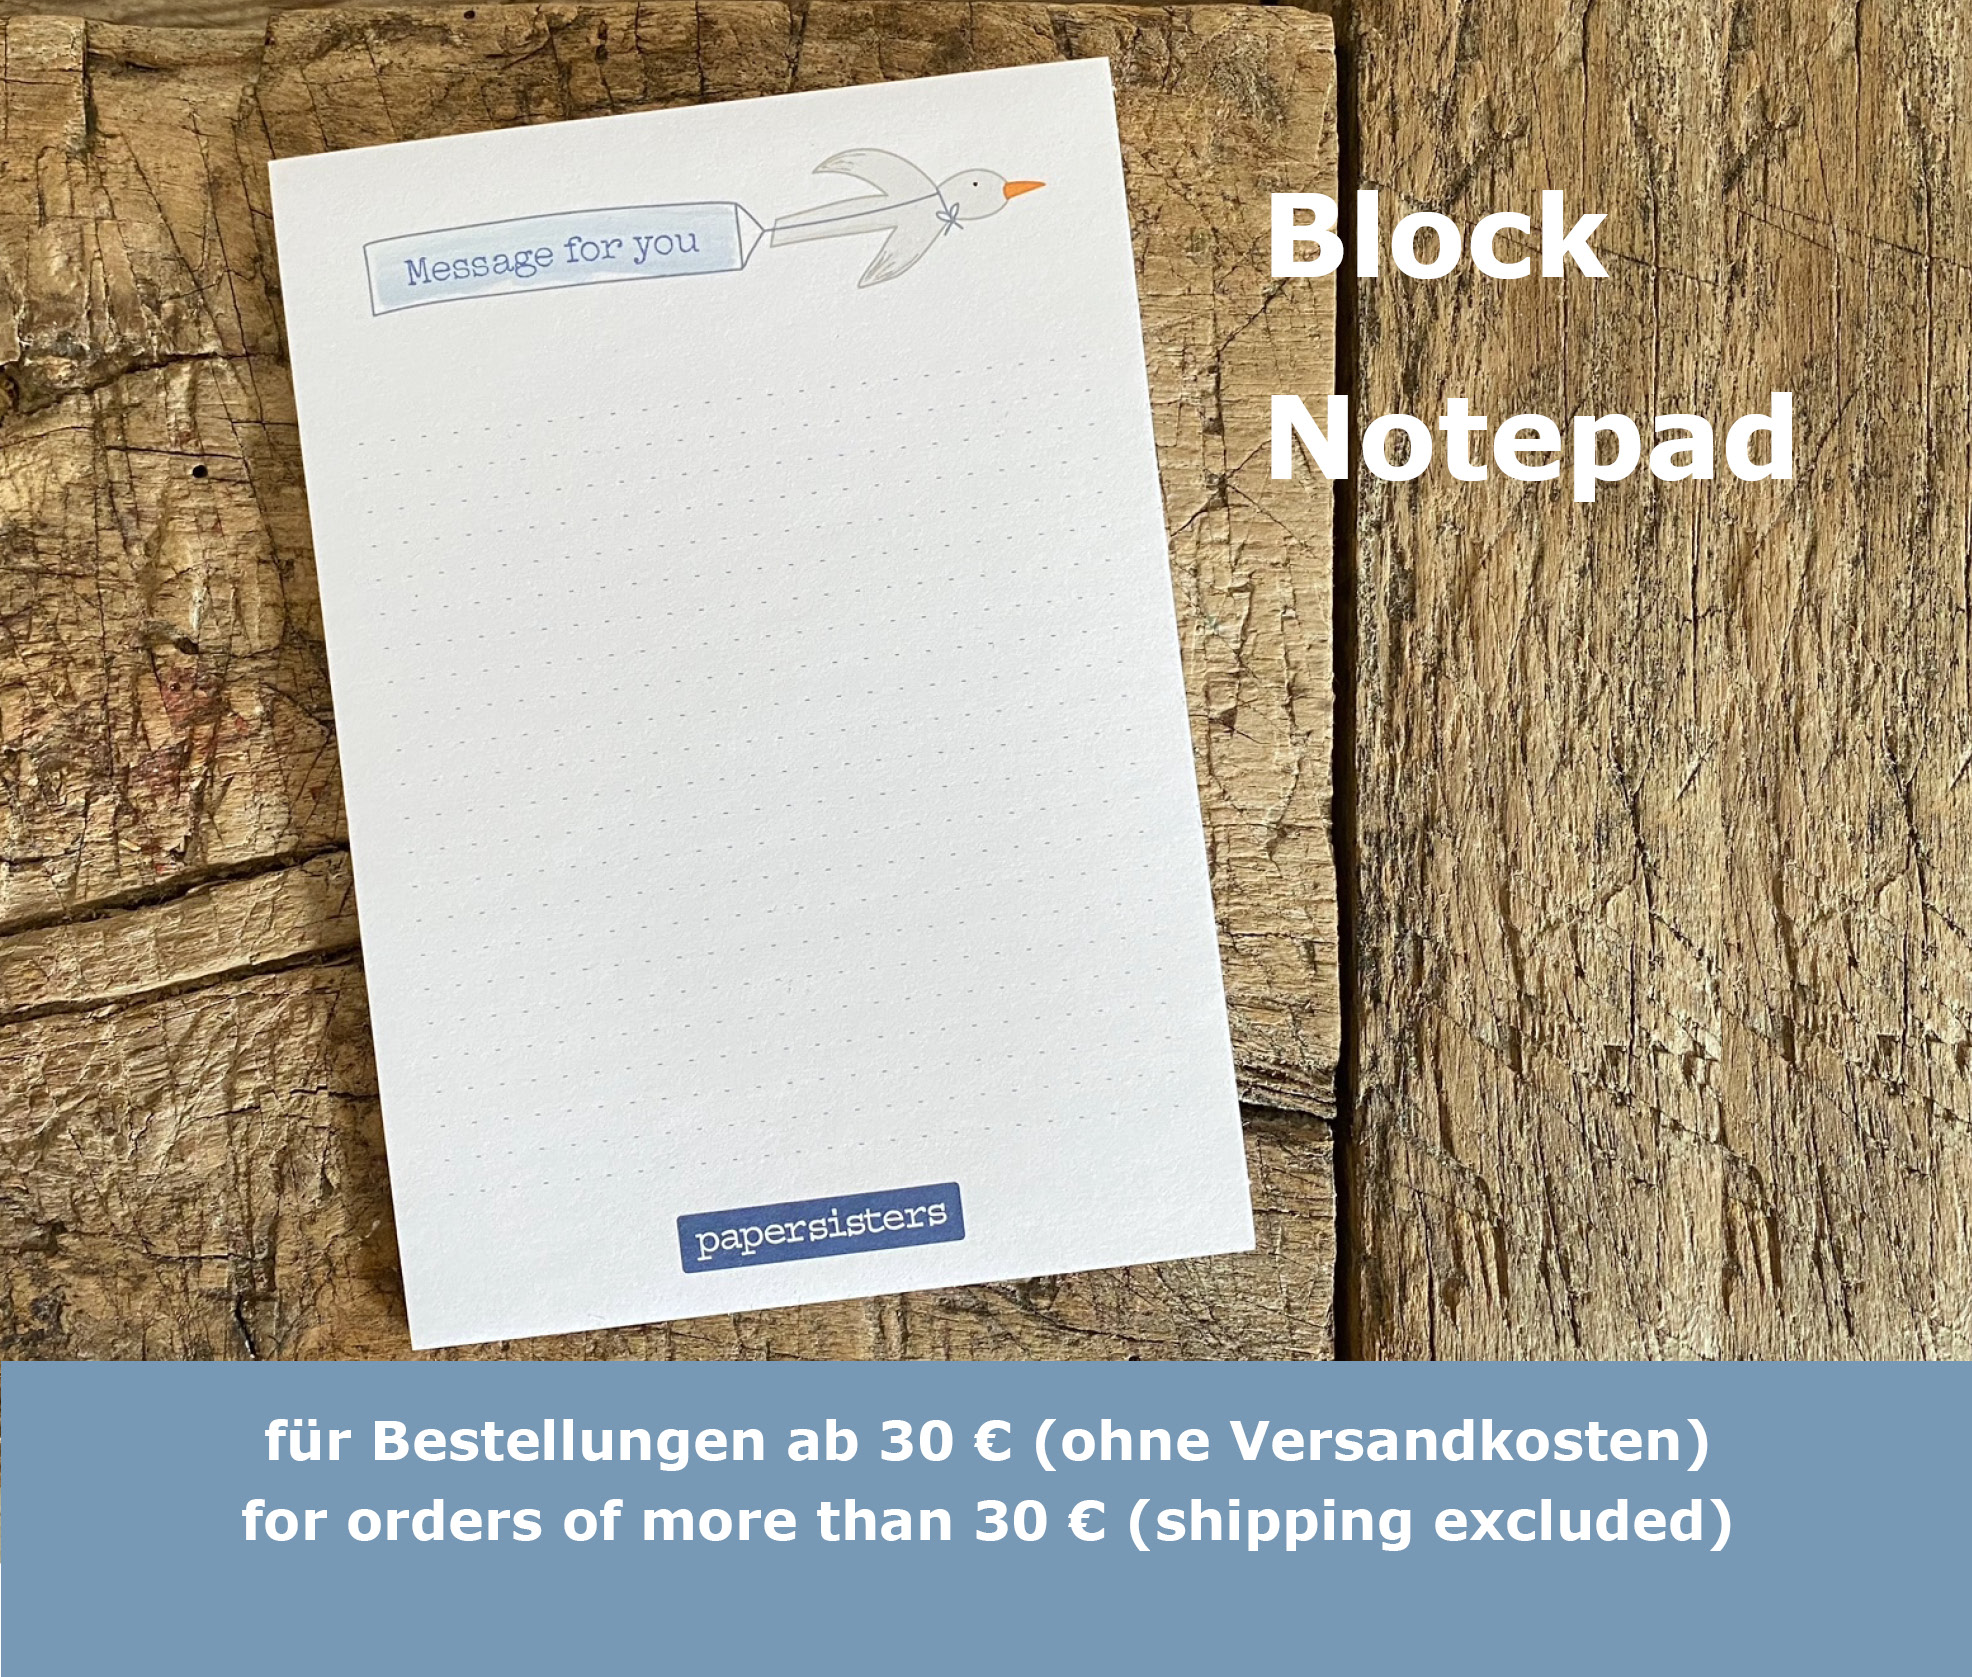 papersisters-Goodie-A6-Notizblock-Notepad3lie4OFnnGnVn